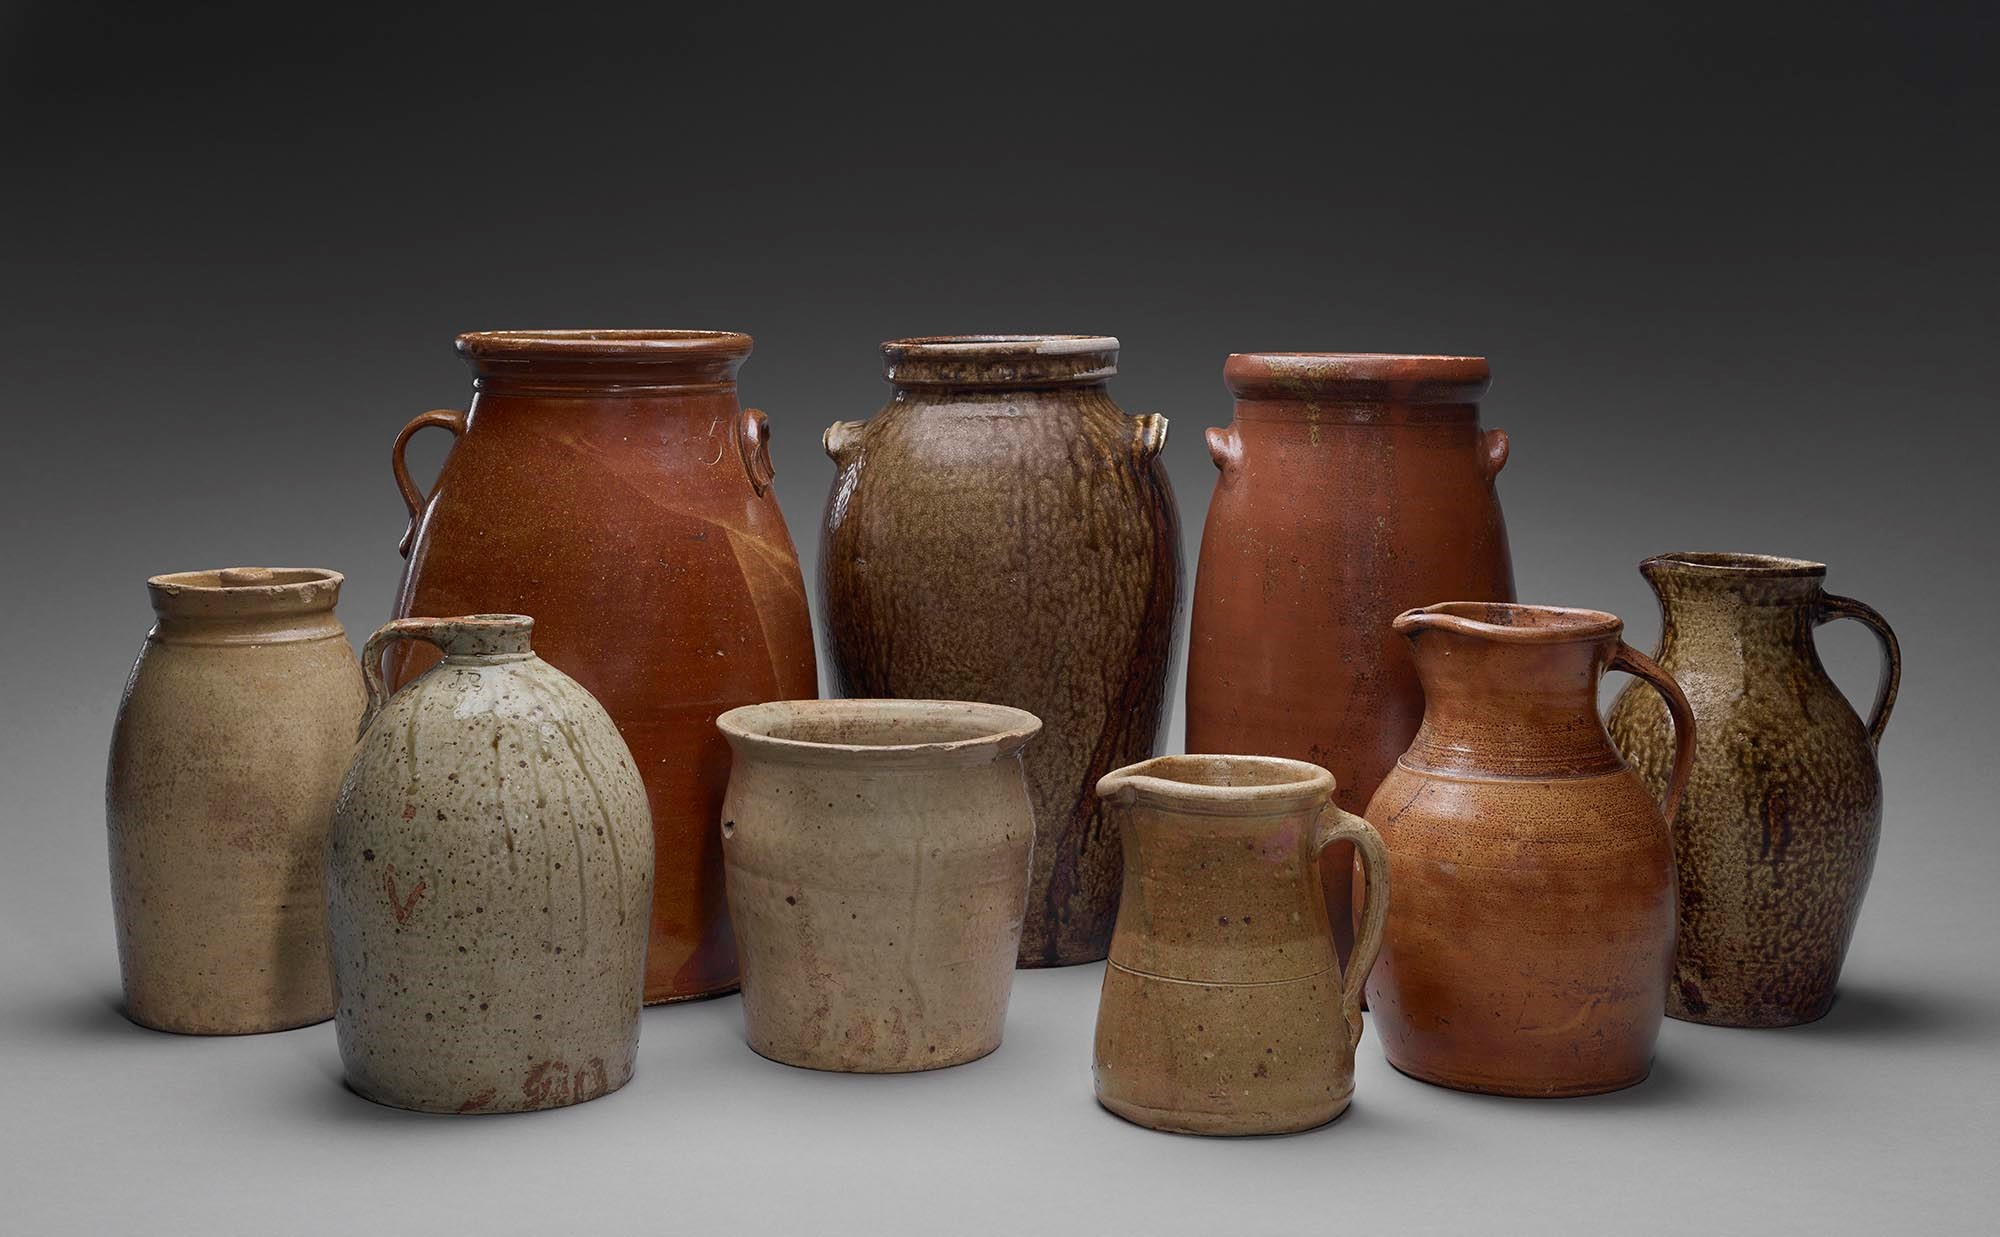 Jugs, Jars, Churns, and Pitchers